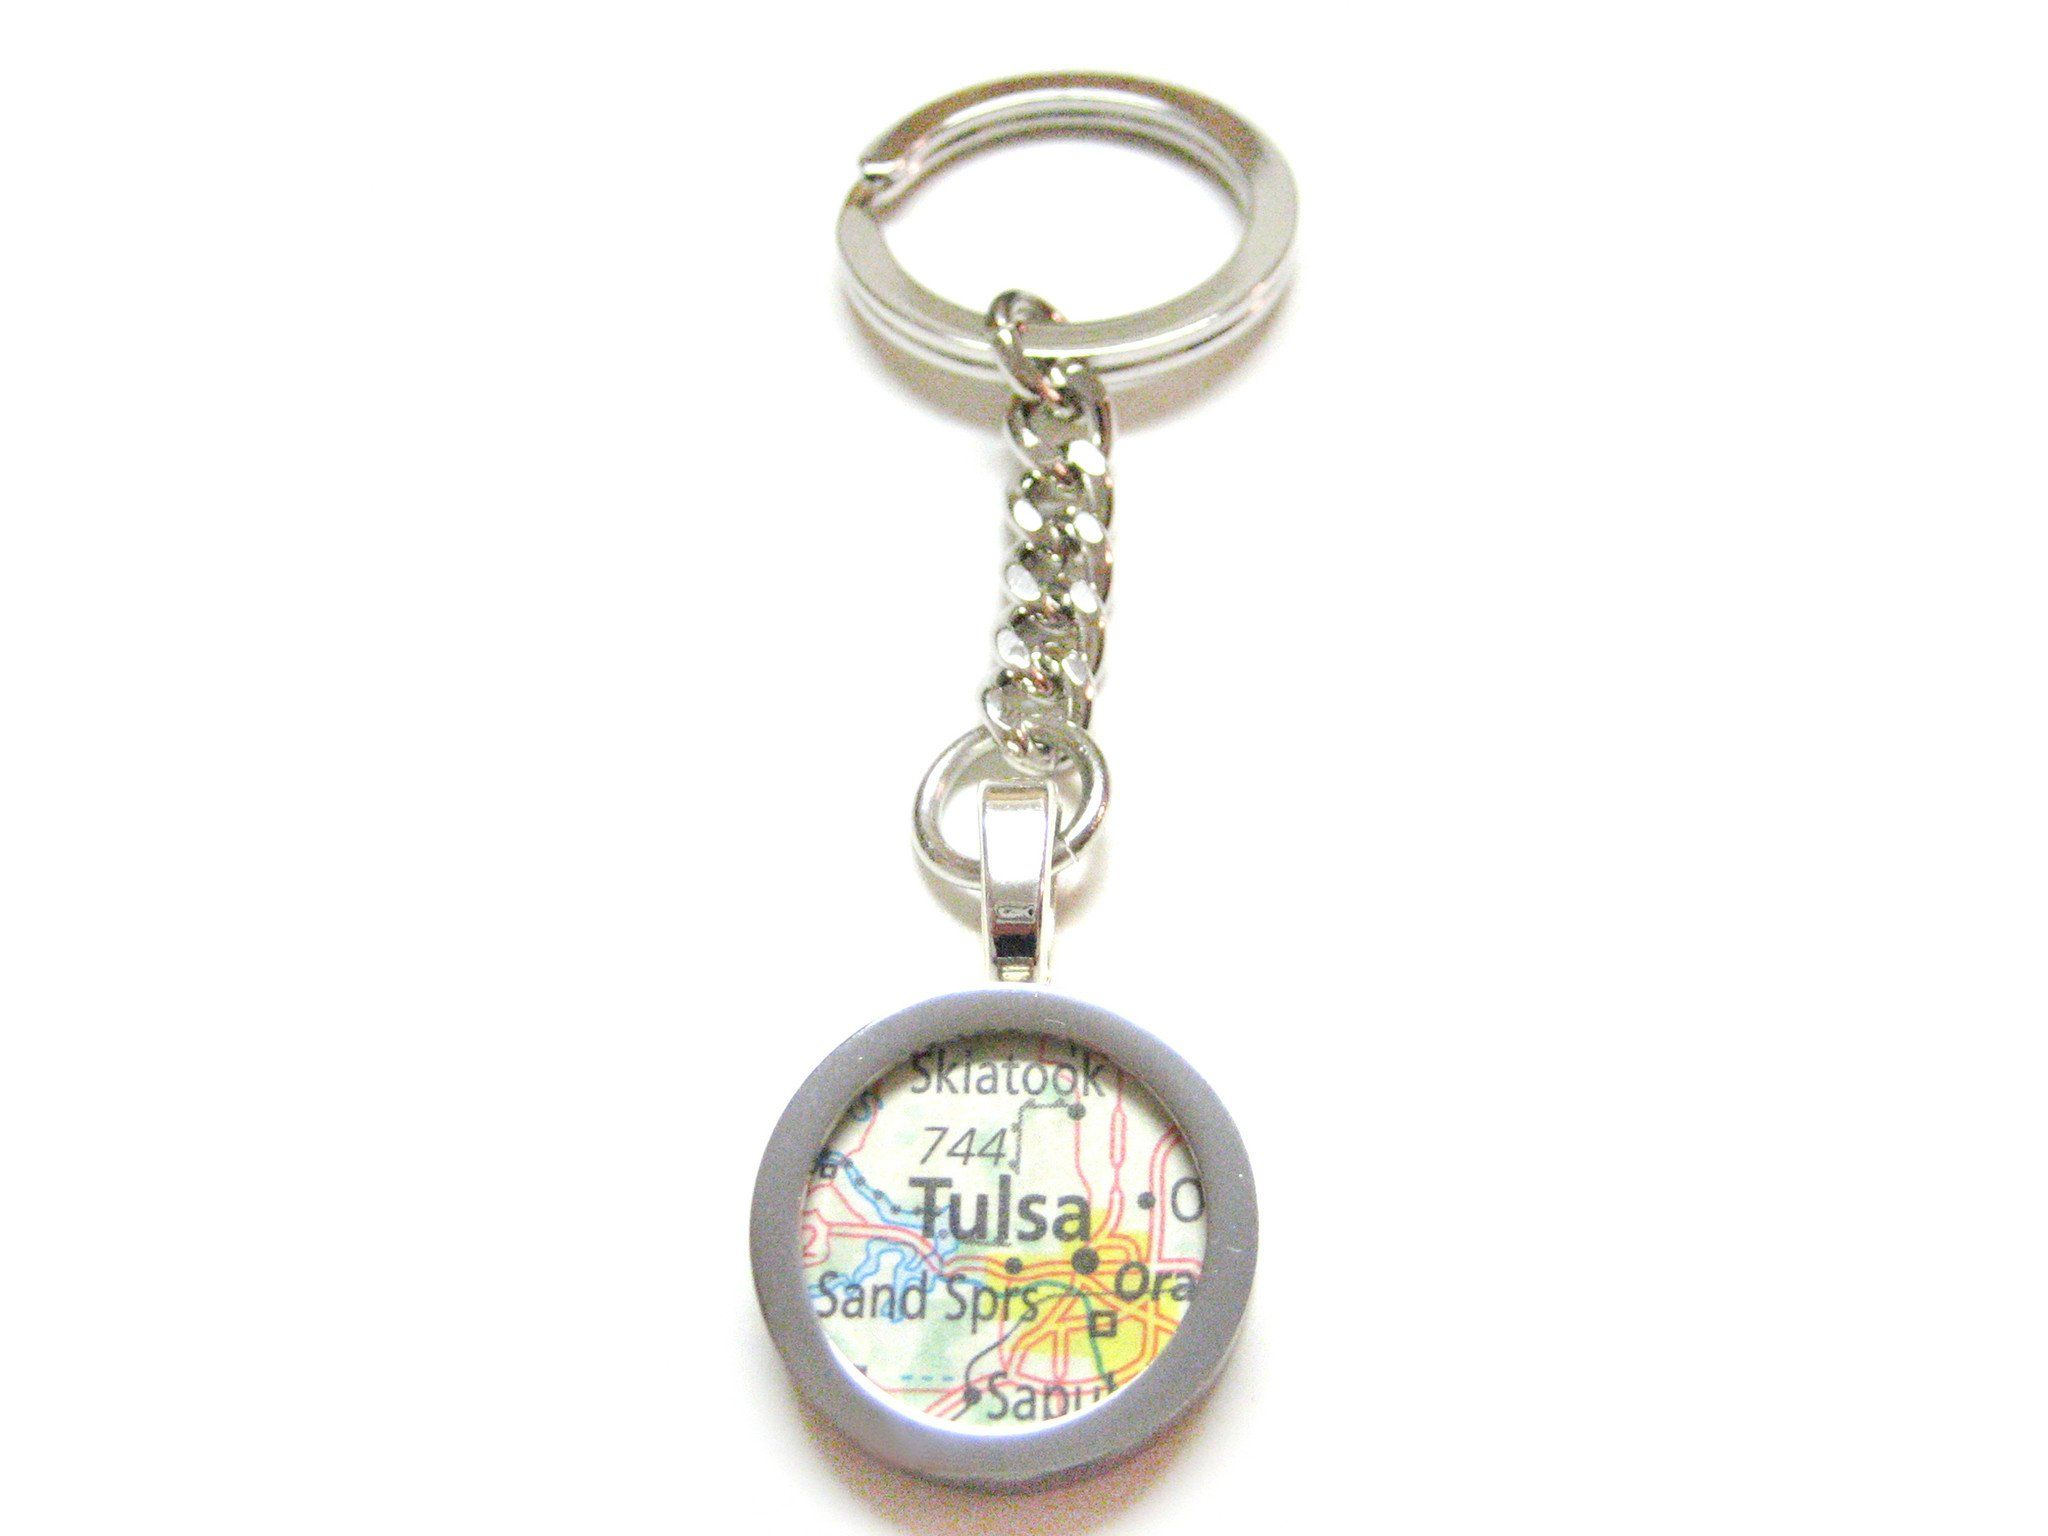 Tulsa Oklahoma Map Pendant Keychain (With images) Map